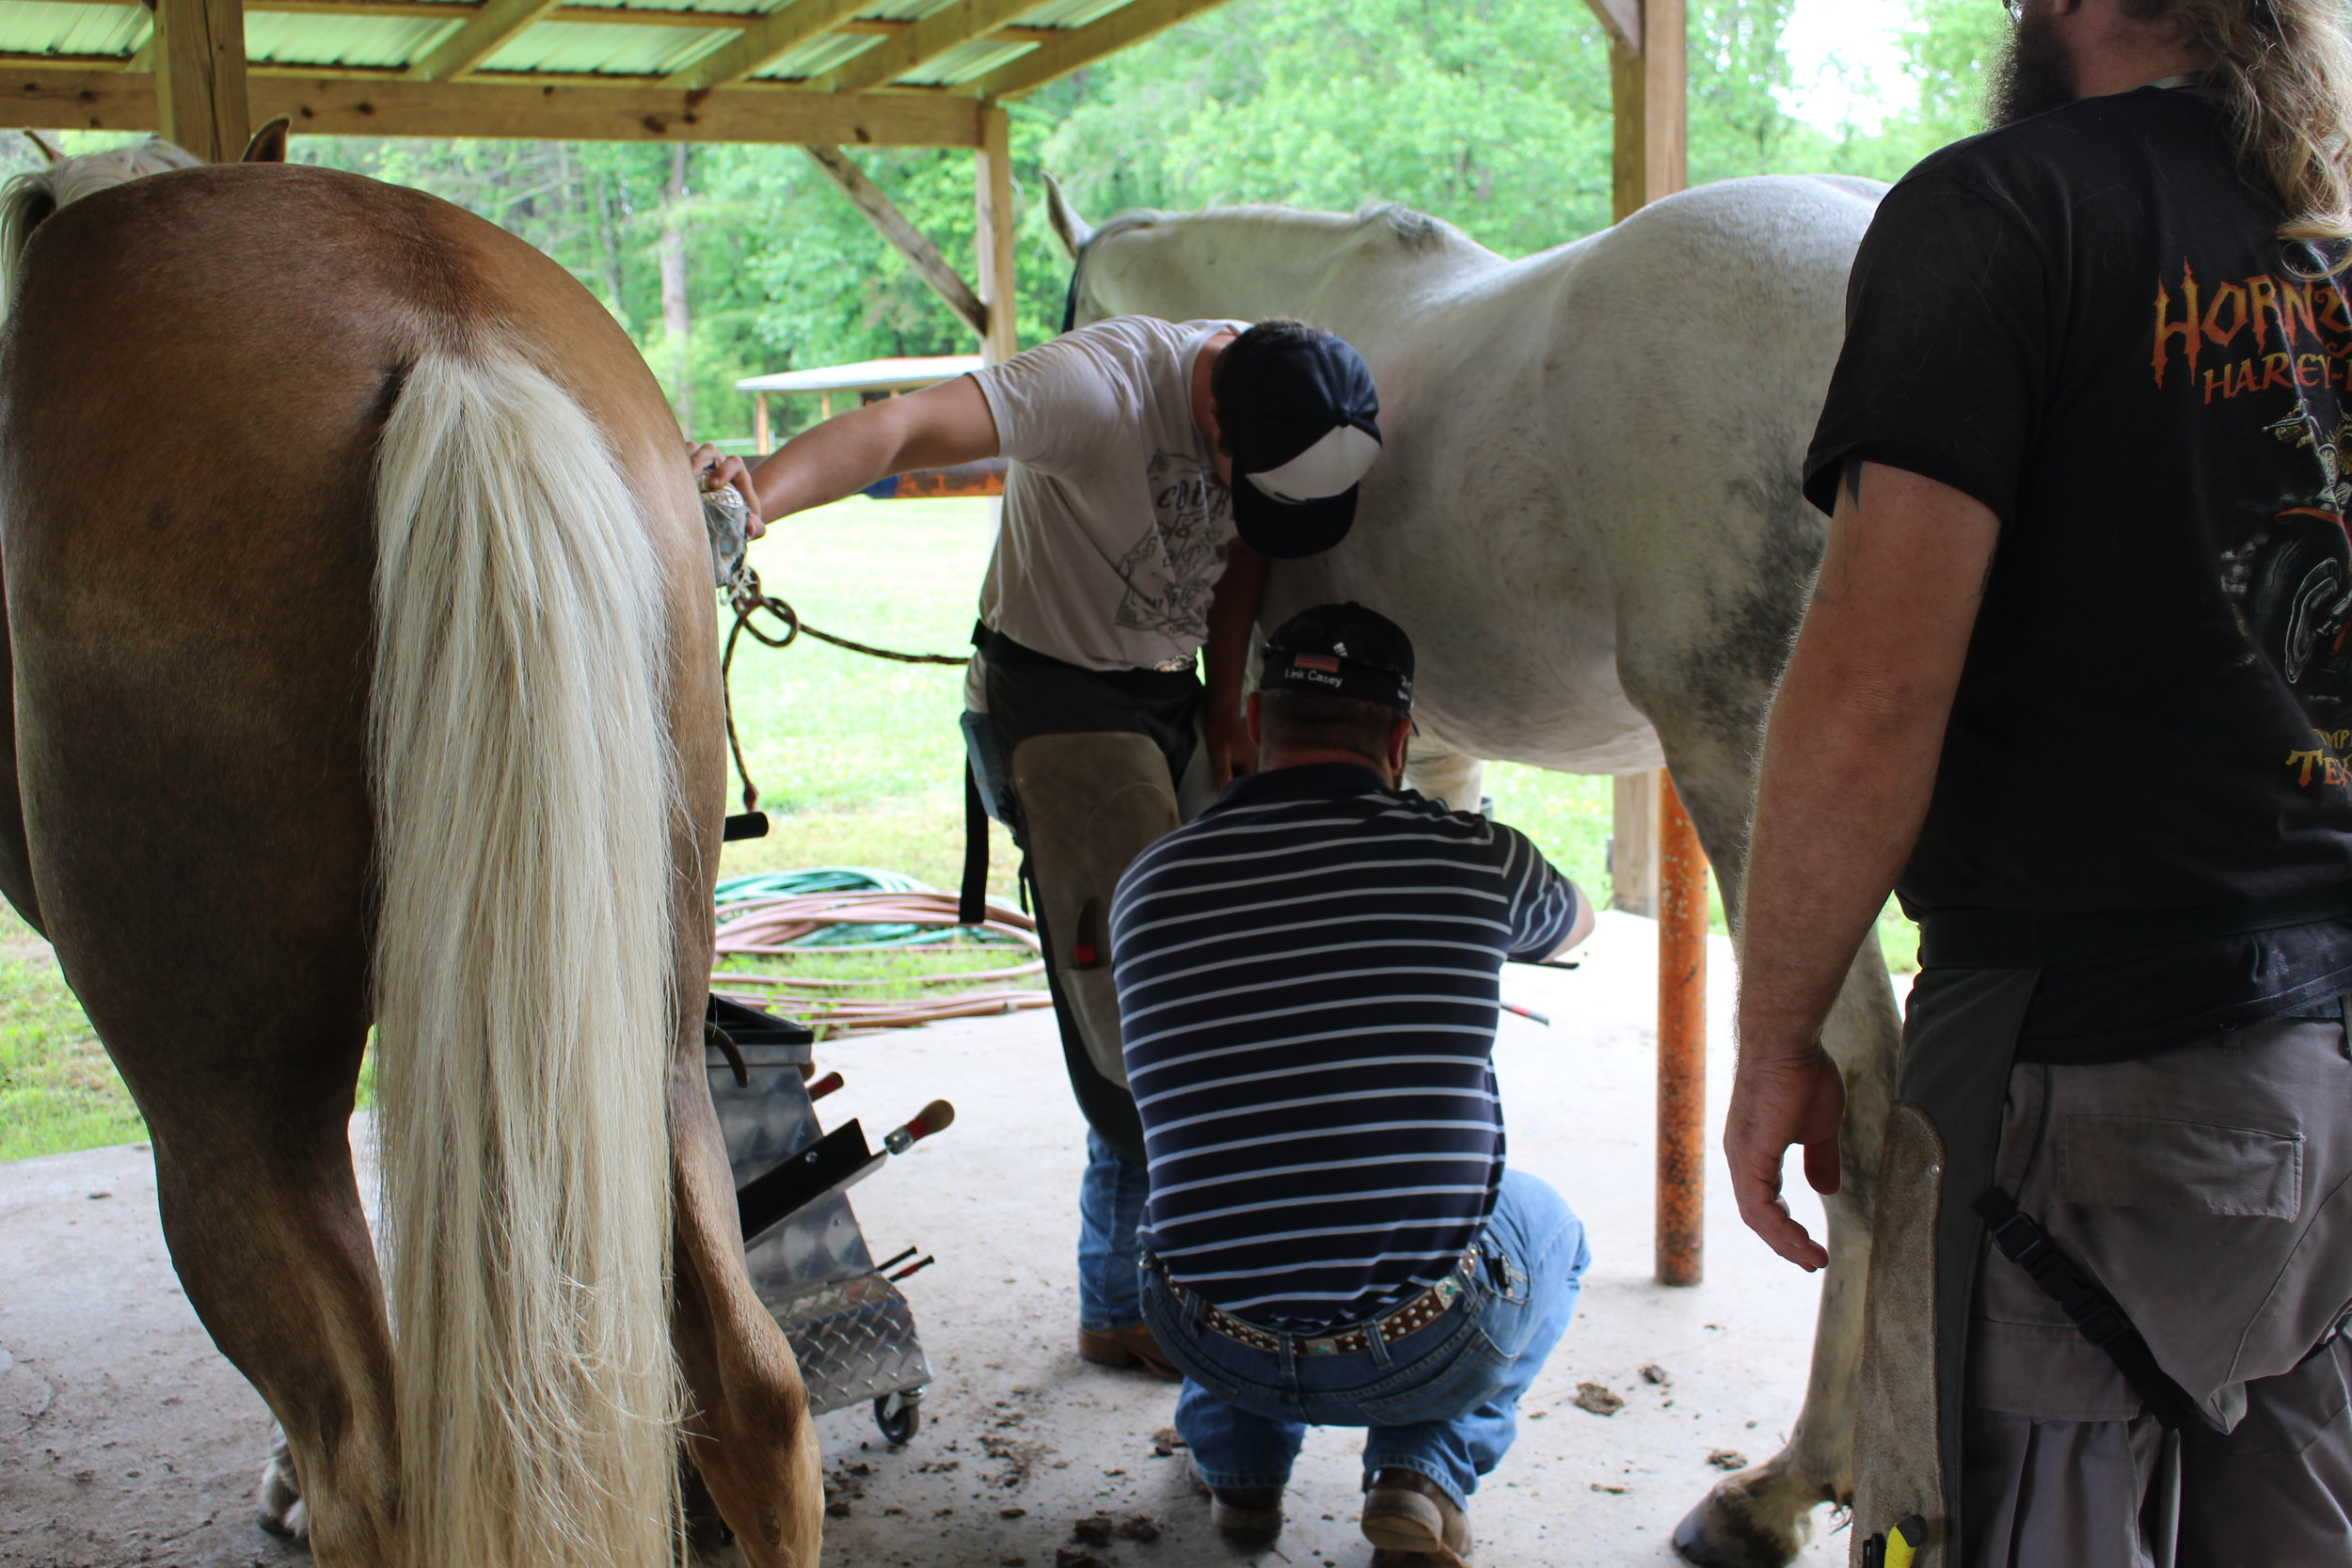 Casey & Son Horseshoeing School of Georgia farrier students shoeing, Link Casey, Owner Instructor